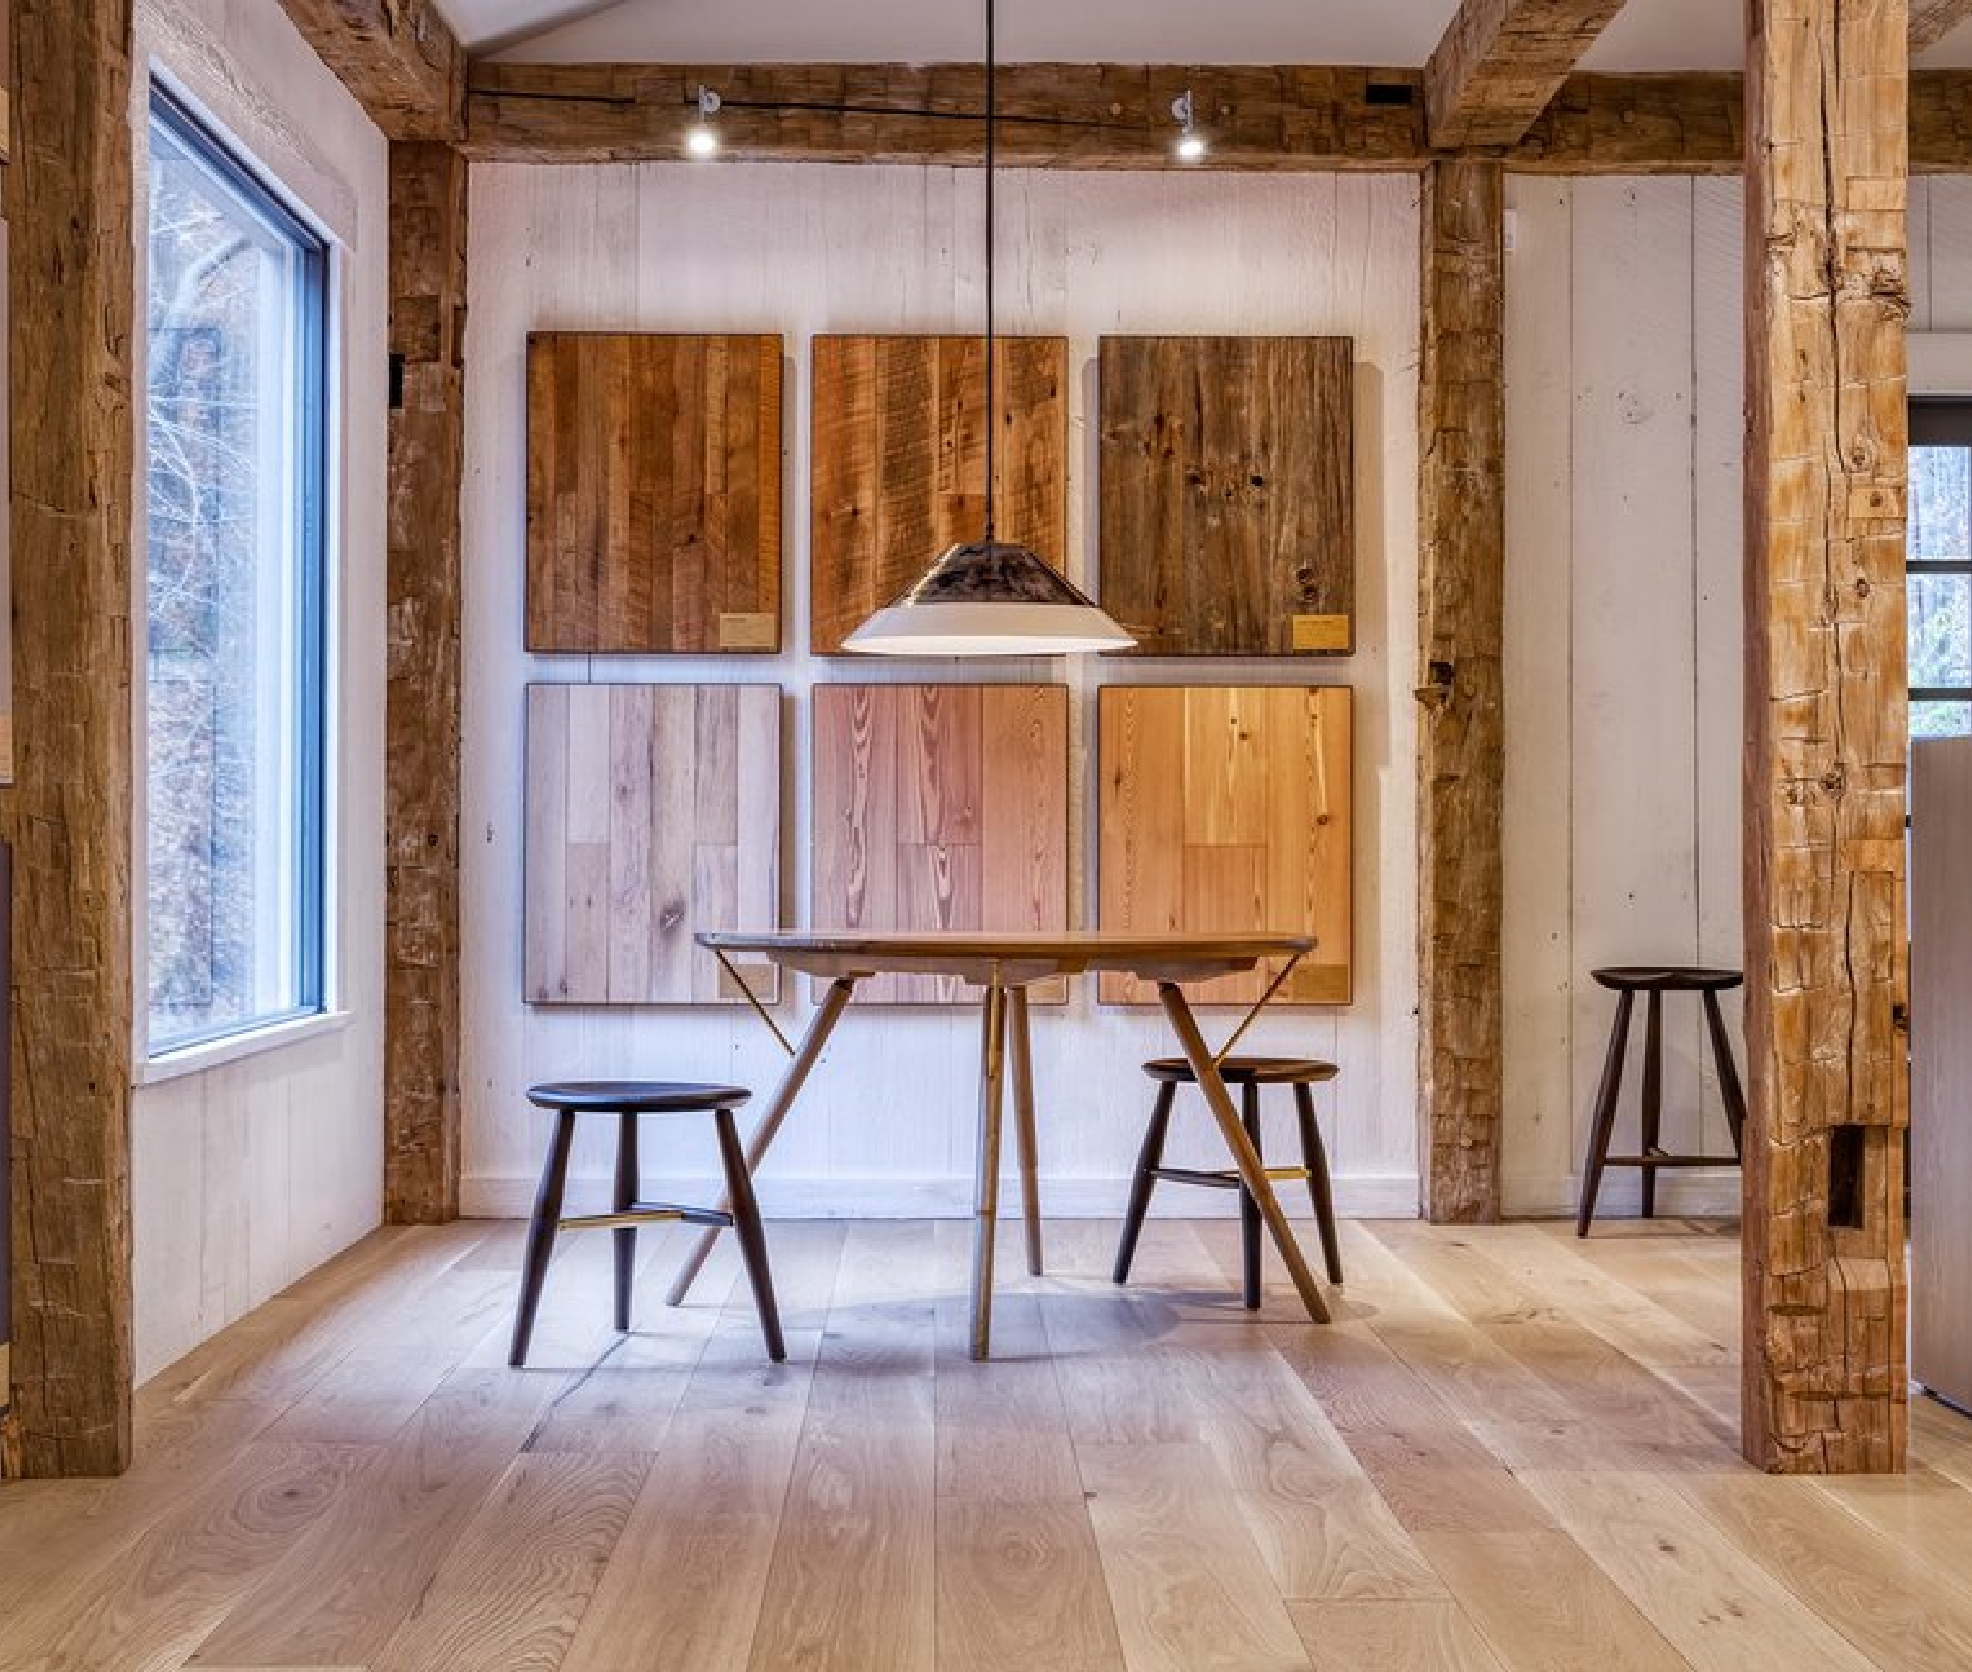 our show room, cosy wooden place. two chairs and table surounded by wooden walls